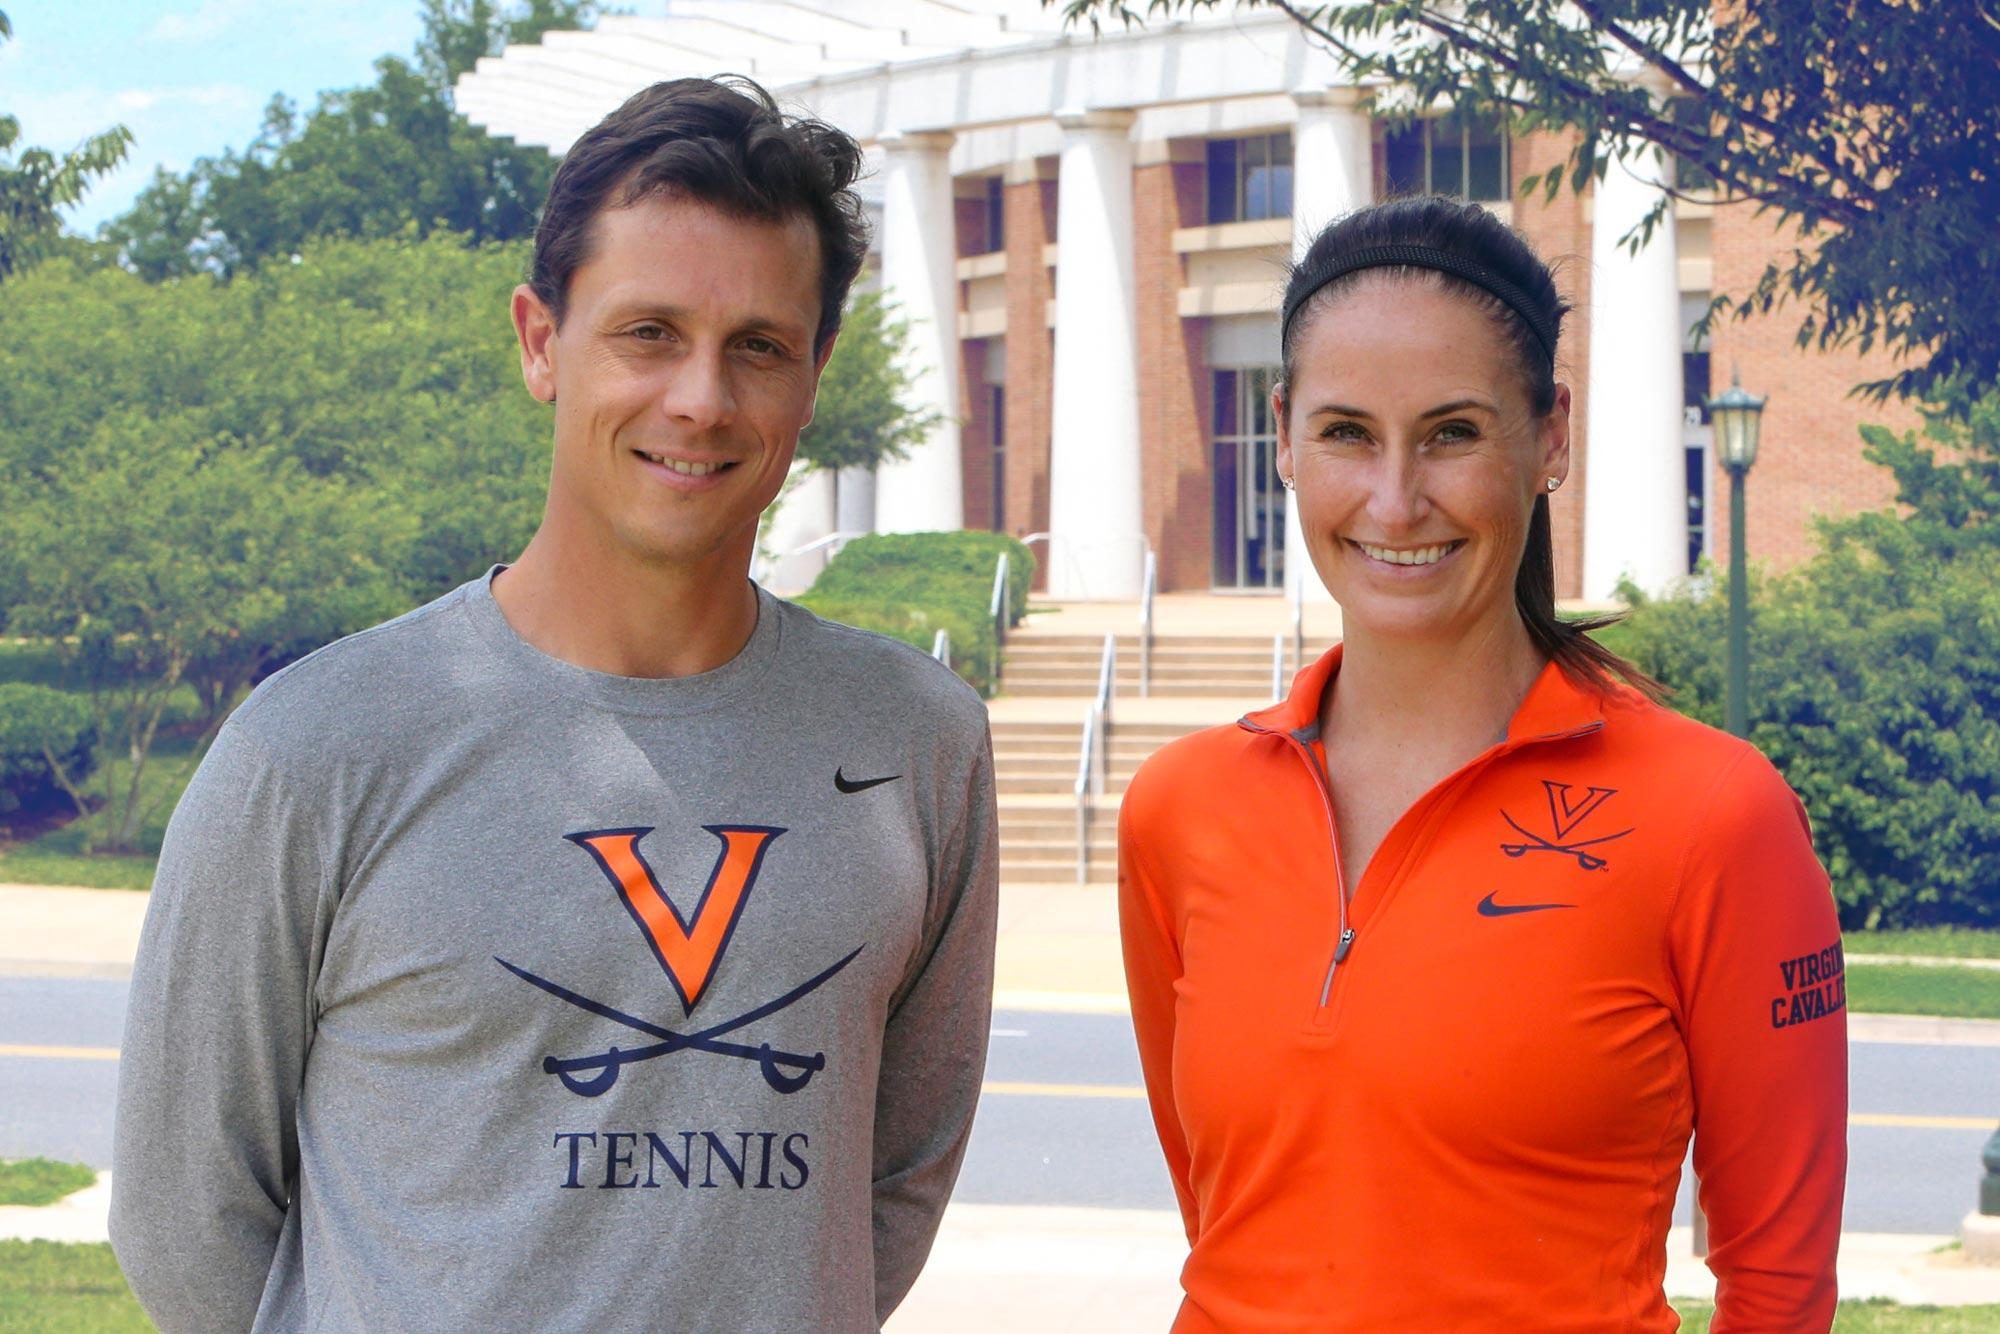 Andres Pedroso, left, and Sara O'Leary both take over Cavalier tennis programs that have been very successful, but they aren't content to maintain the status quo.